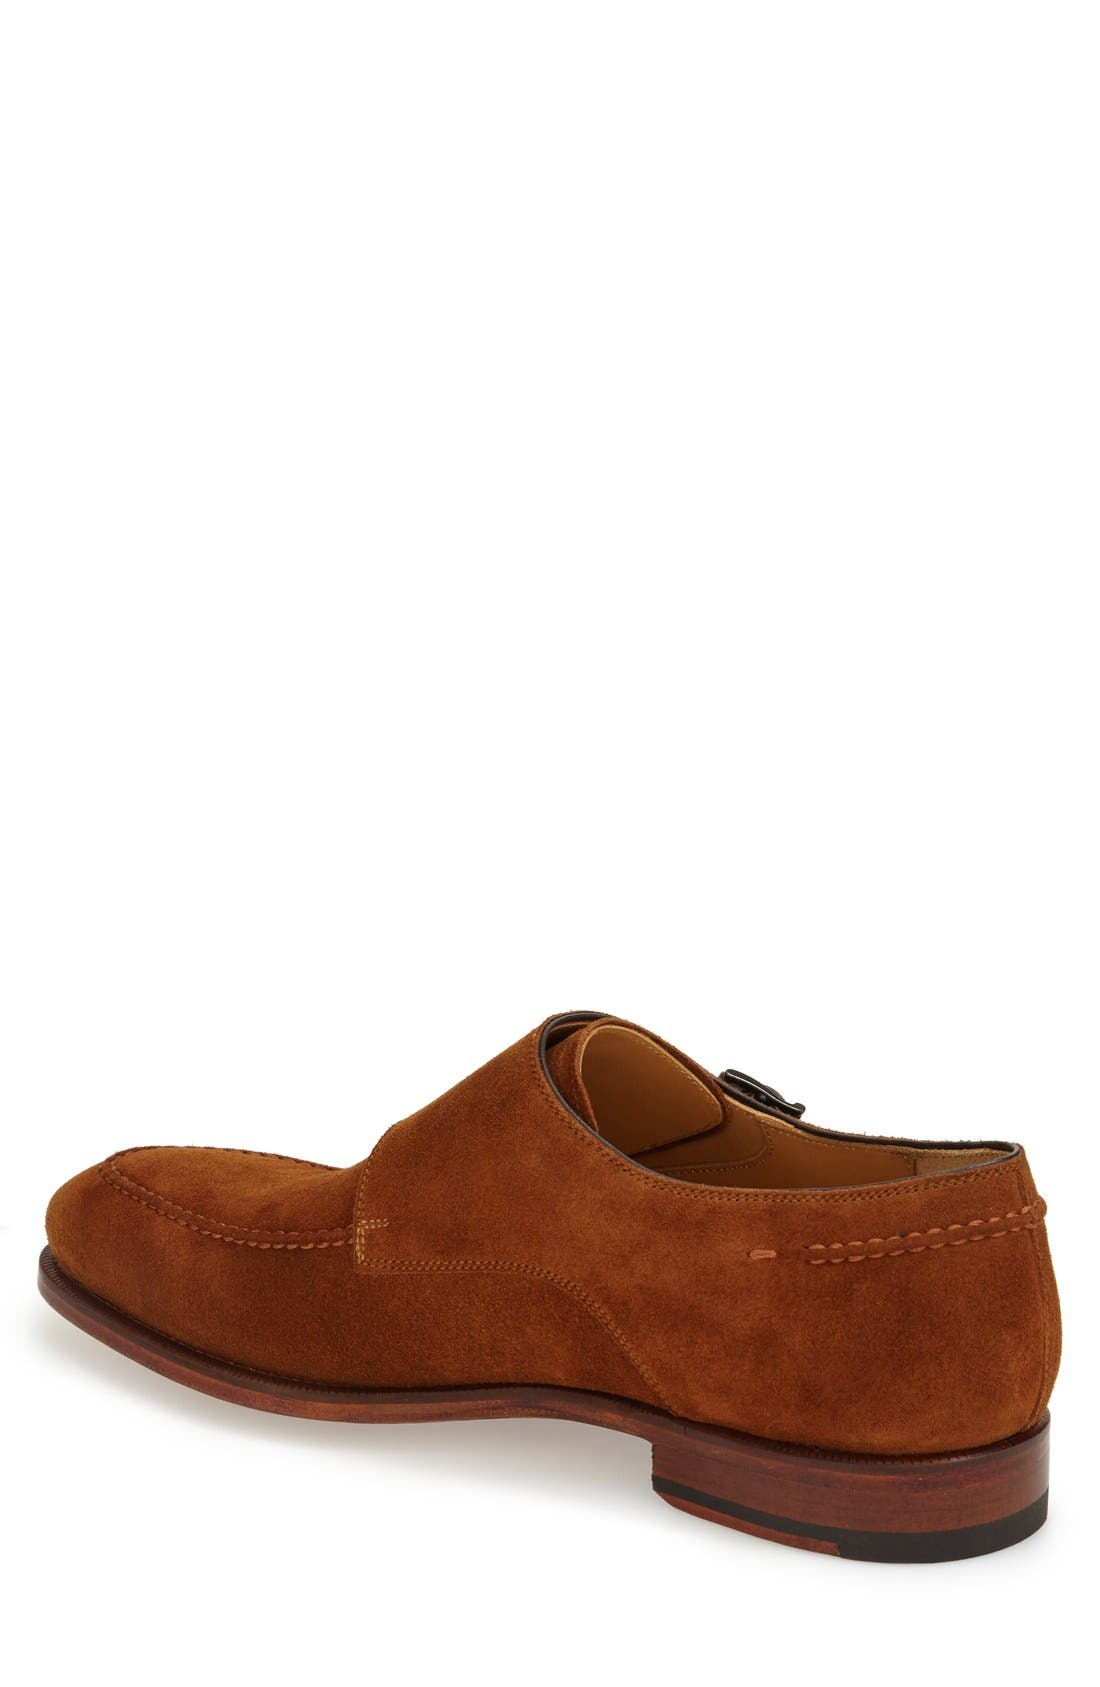 Alternate Image 2  - Magnanni 'Tomas' Double Monk Strap Shoe (Men)